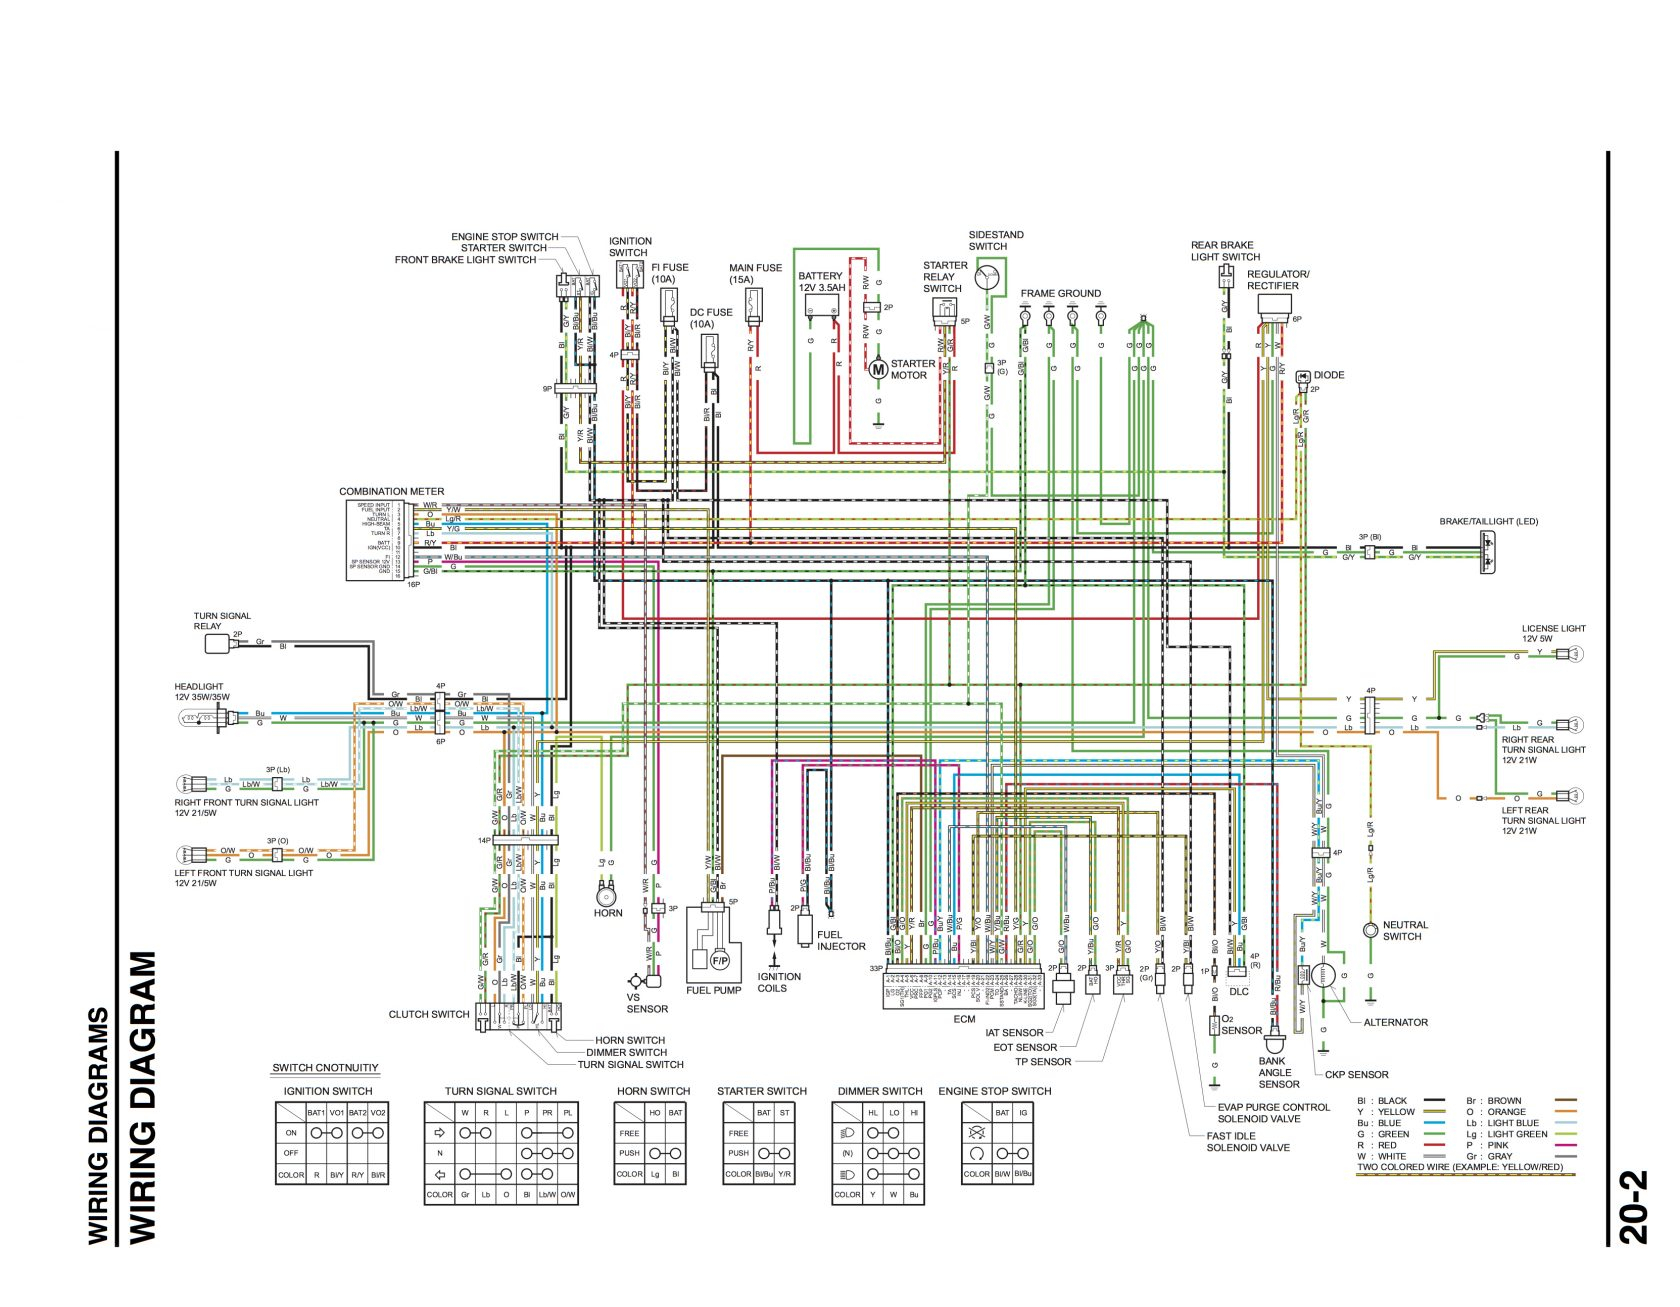 hight resolution of 2004 peterbilt wiring diagram data wiring diagram 2004 peterbilt 379 wiring diagram 2004 peterbilt wiring diagram